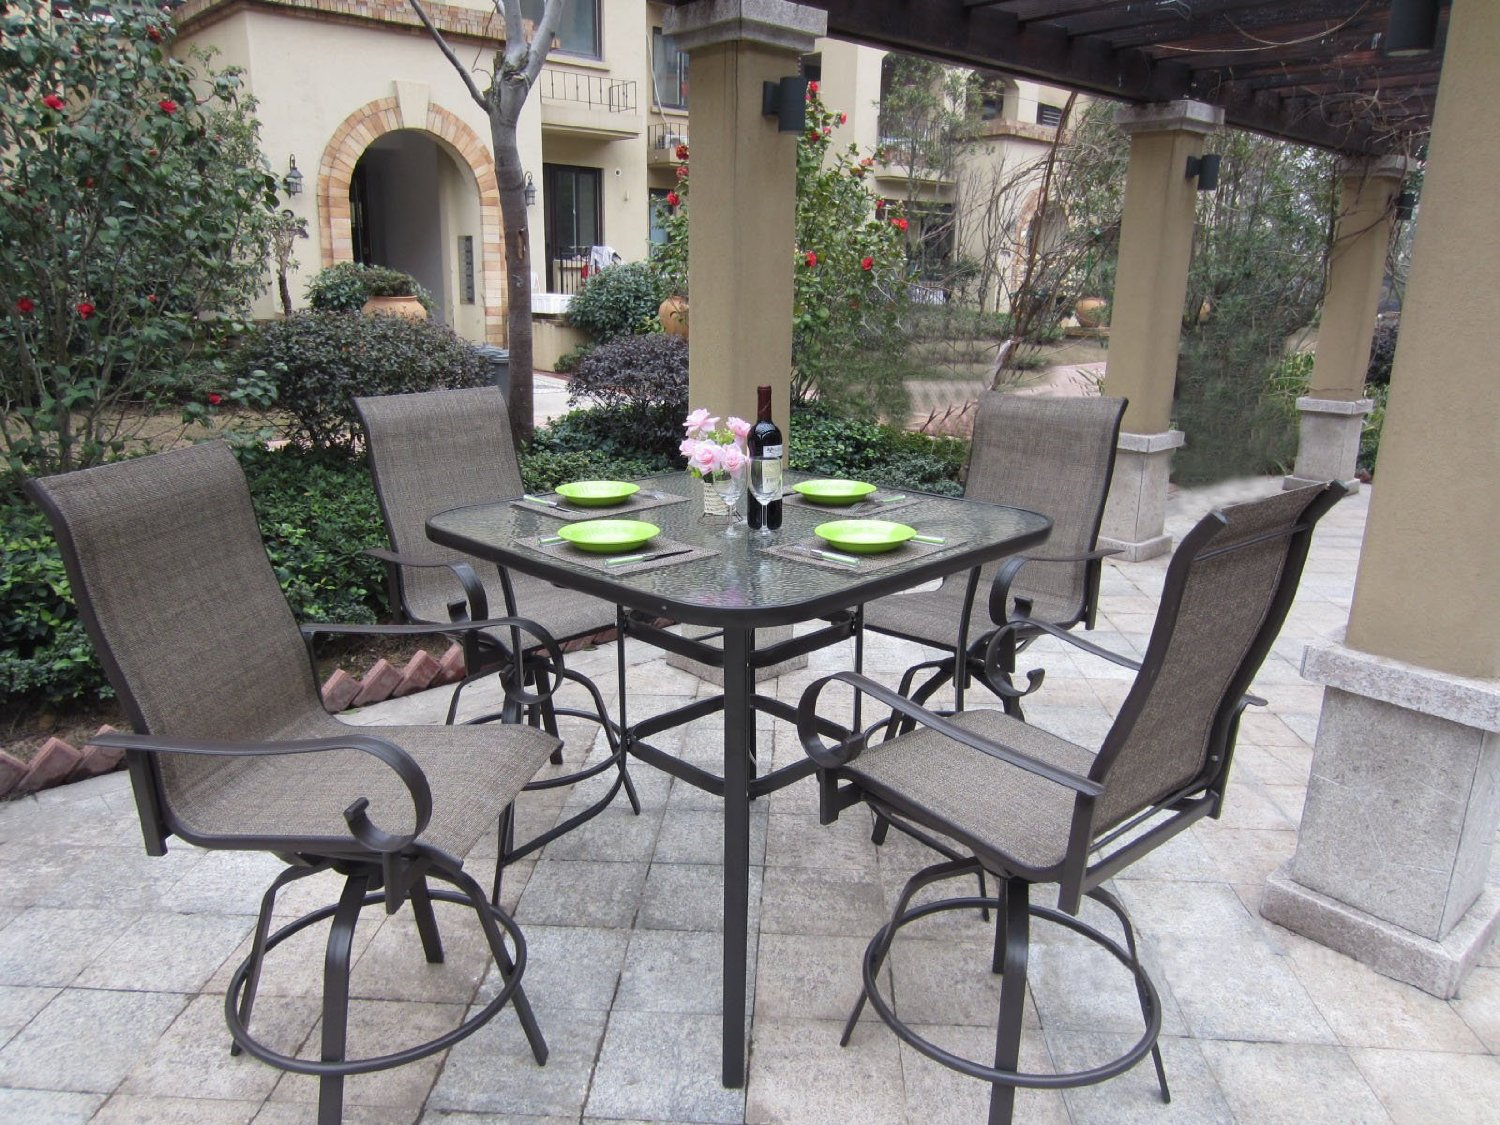 3 Bar Height Patio Dining Sets to Enjoy Outdoor Bar : swivel bar height patio set from outdoorbar.net size 1500 x 1125 jpeg 401kB